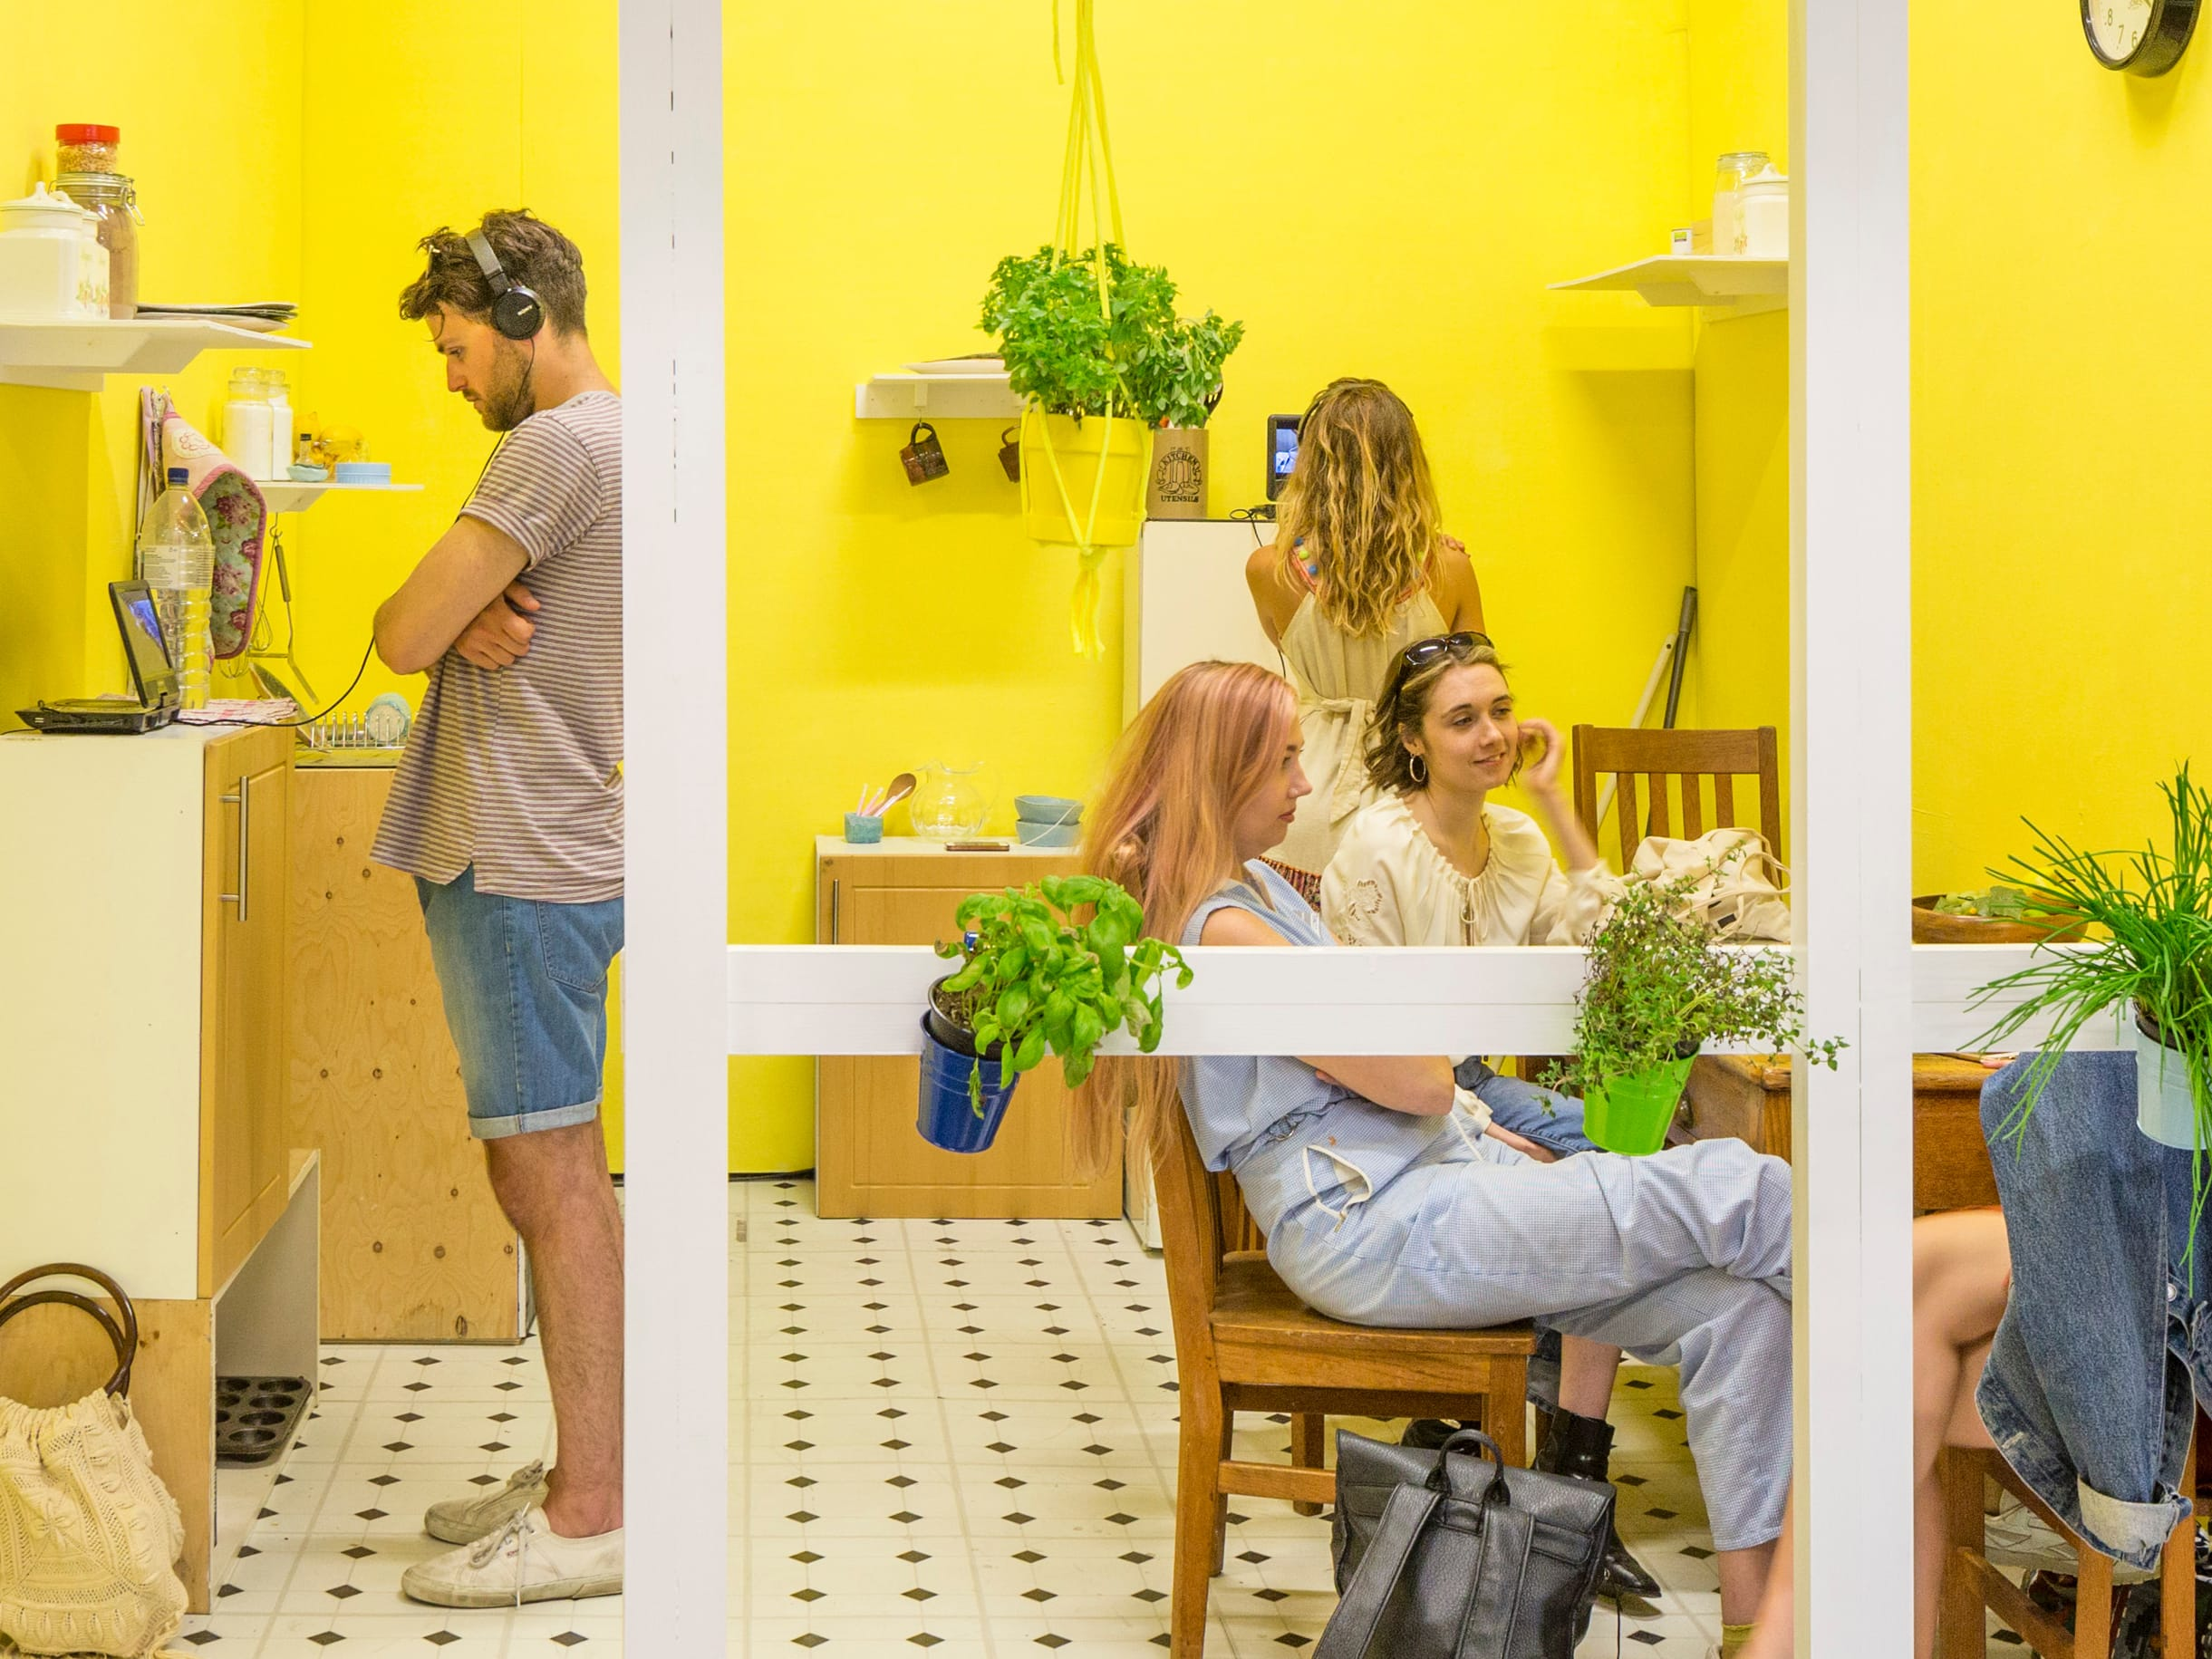 People inside an installation with bright yellow walls